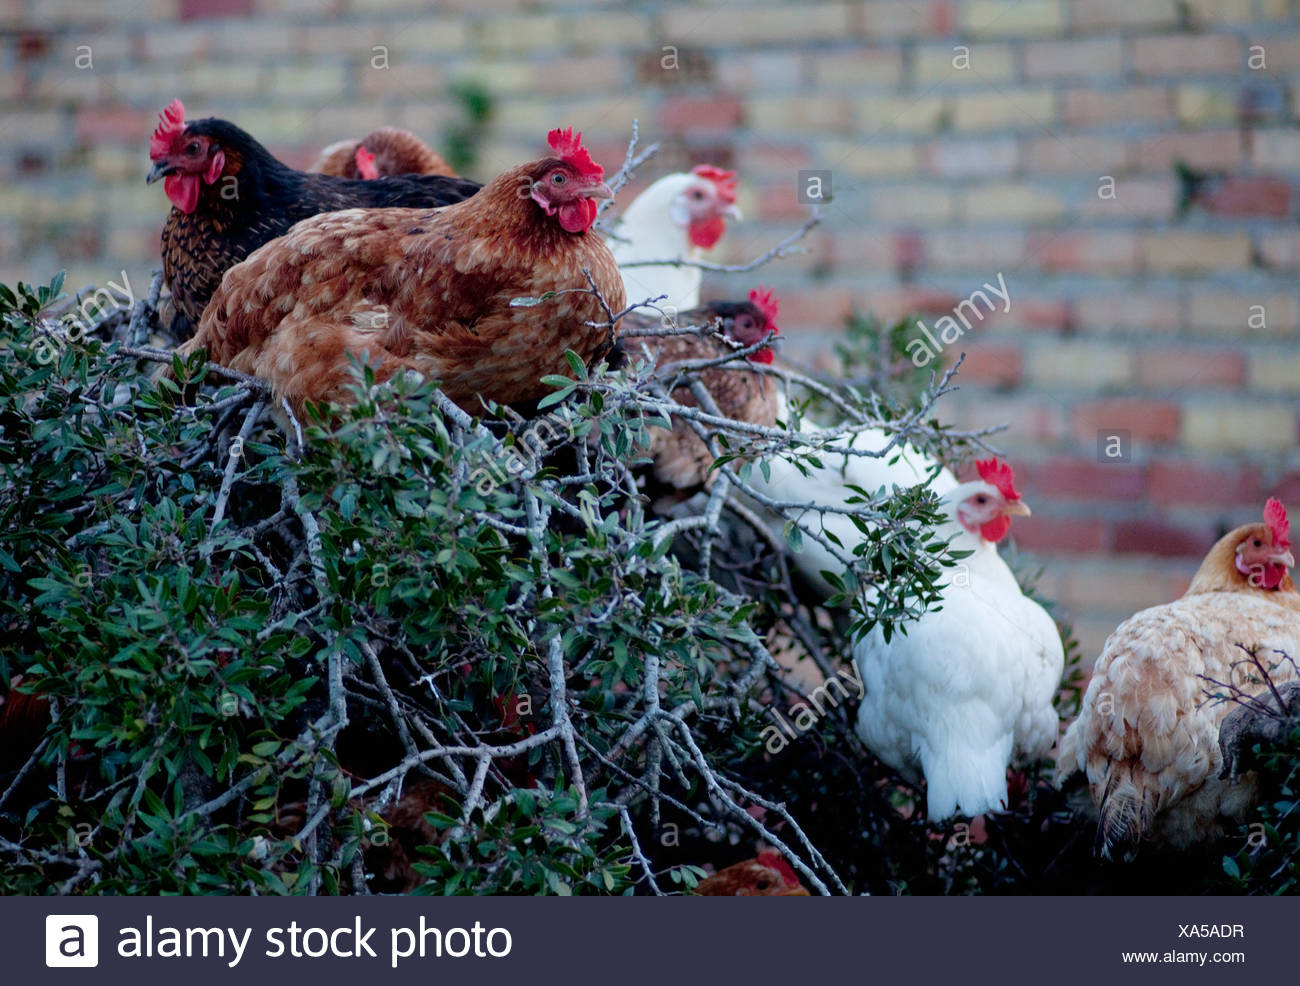 Chickens roosting on tree - Stock Image